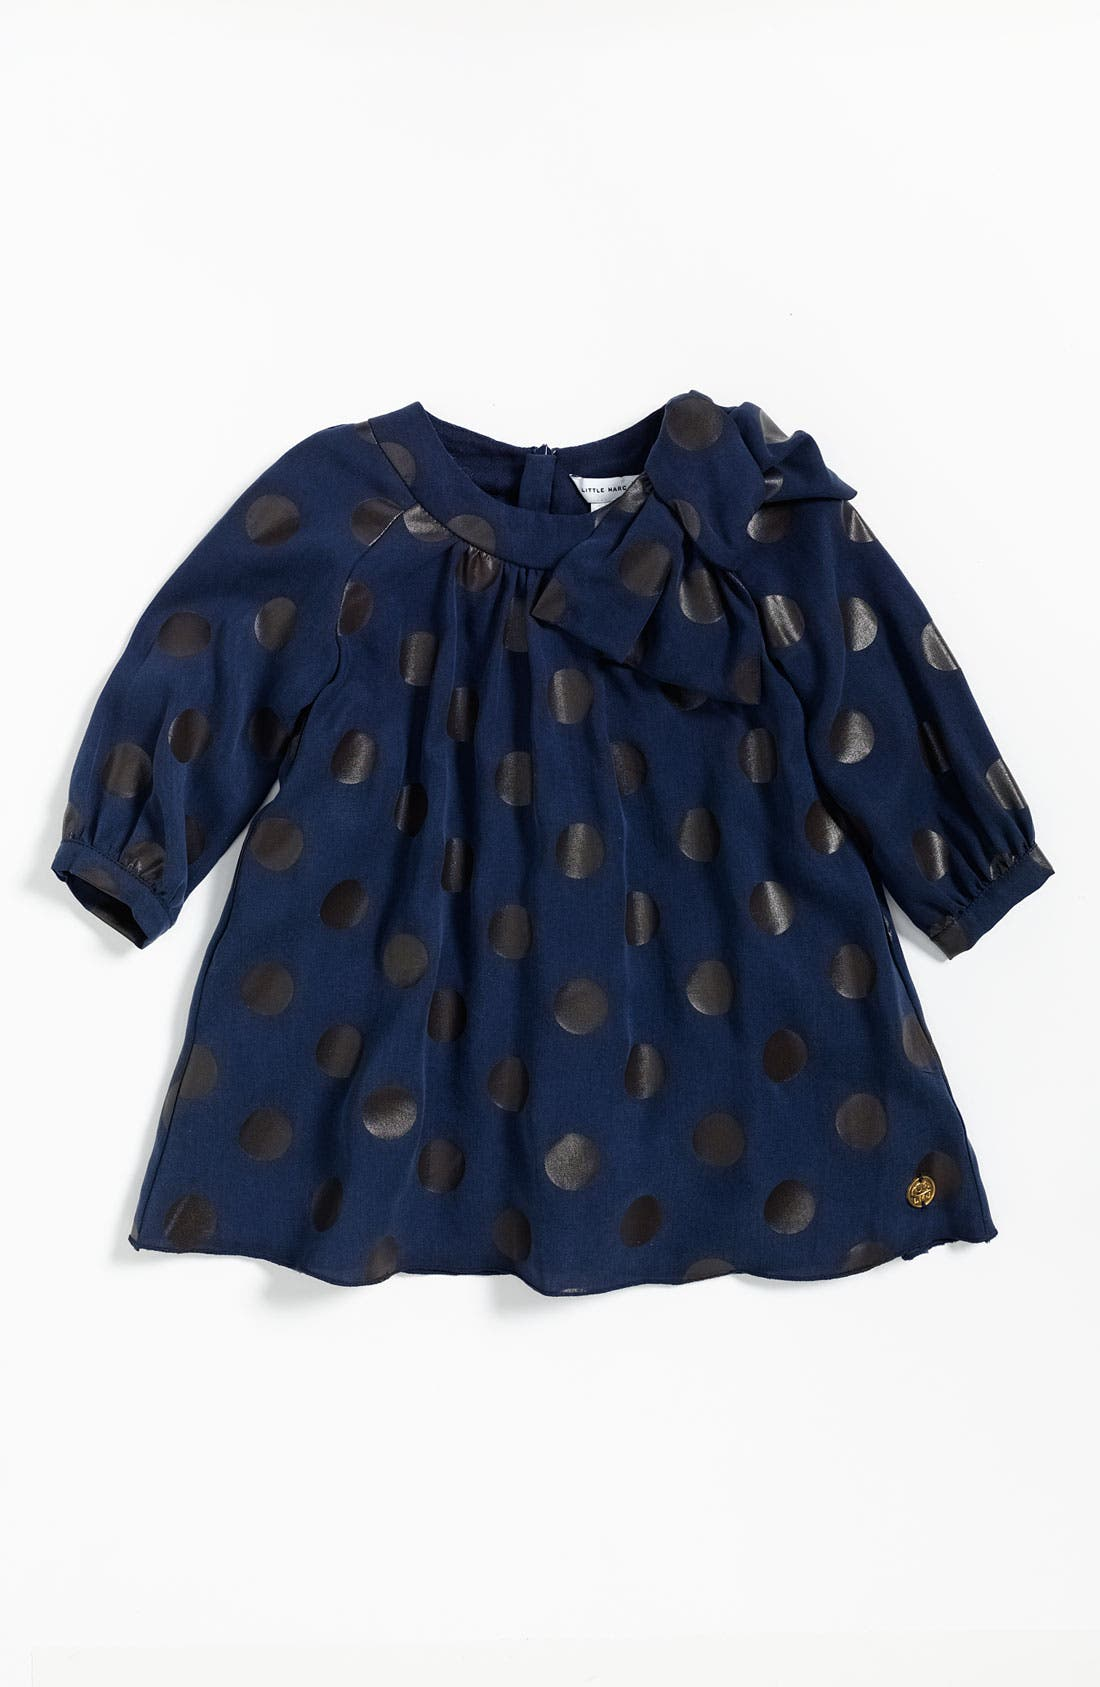 Main Image - LITTLE MARC JACOBS Dotted Dress (Toddler)